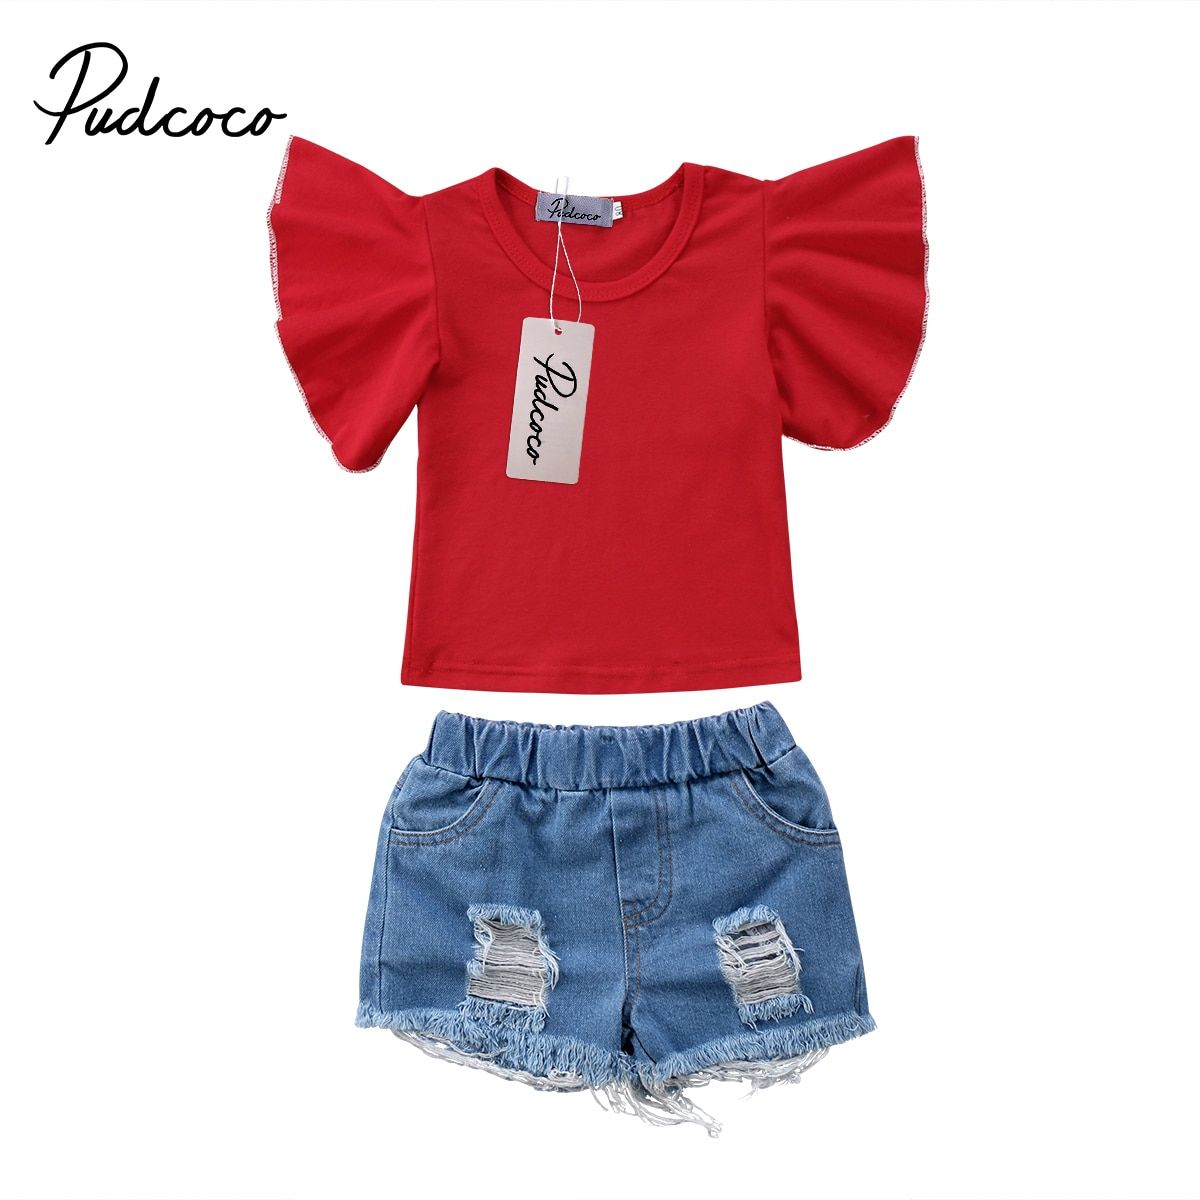 US Infants Baby Girls Kids Tops Ruffle Jeans Dress Shorts Outfits Summer Clothes